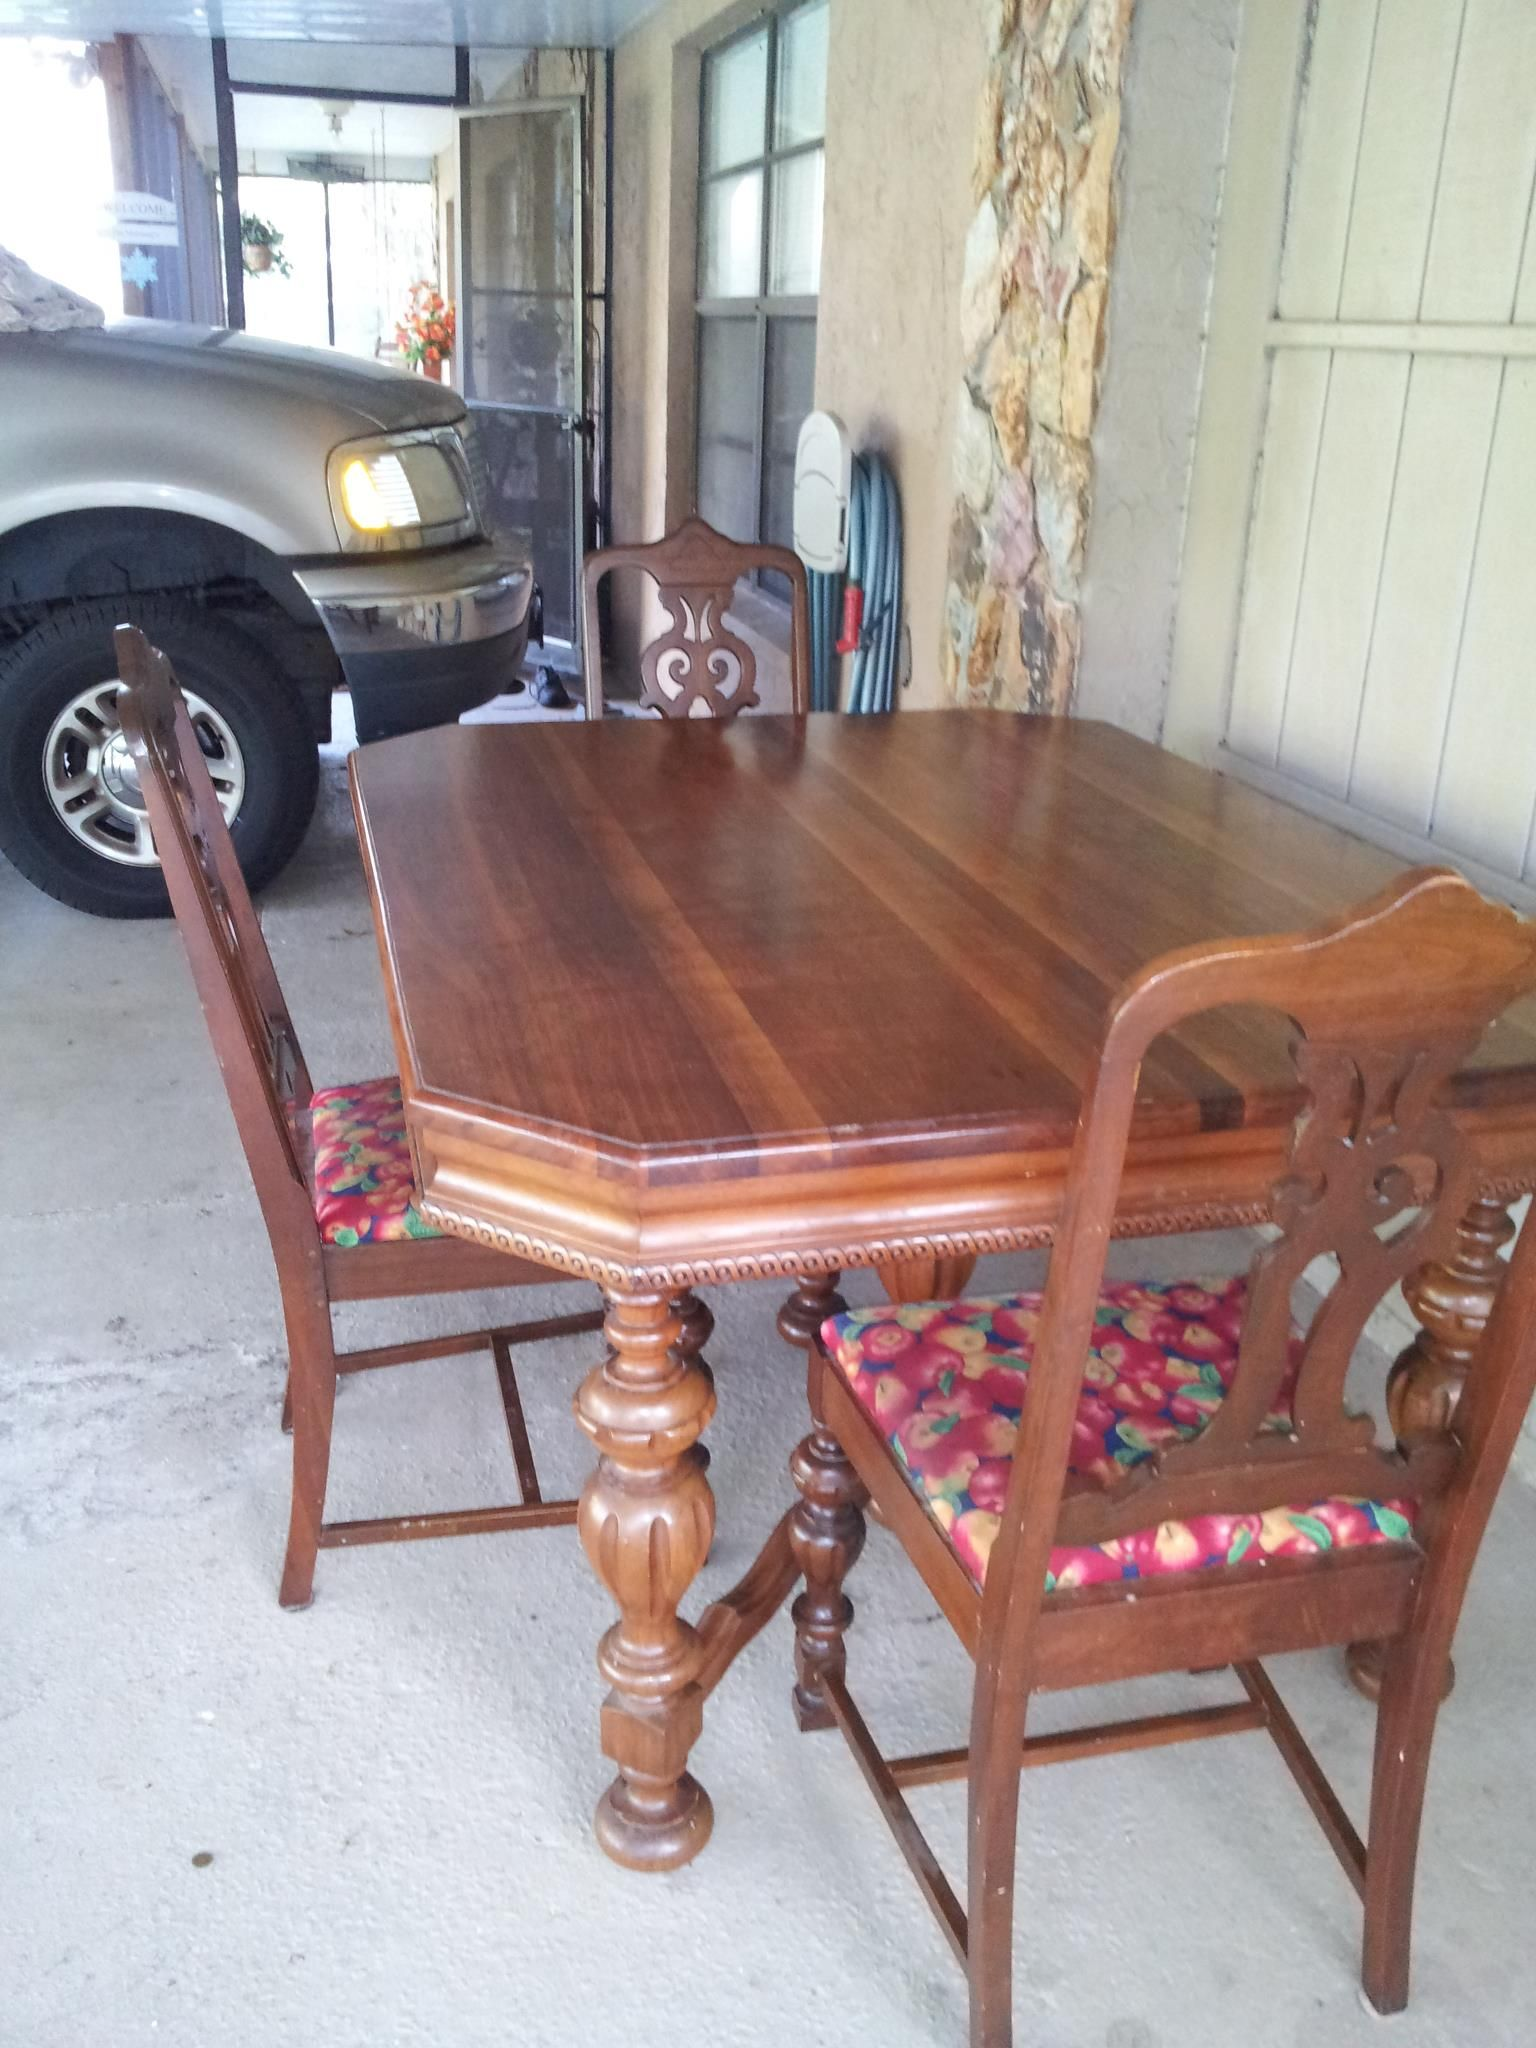 Antique Dining Table In Maloneys Garage Sale Plant City FL For 10000 Solid